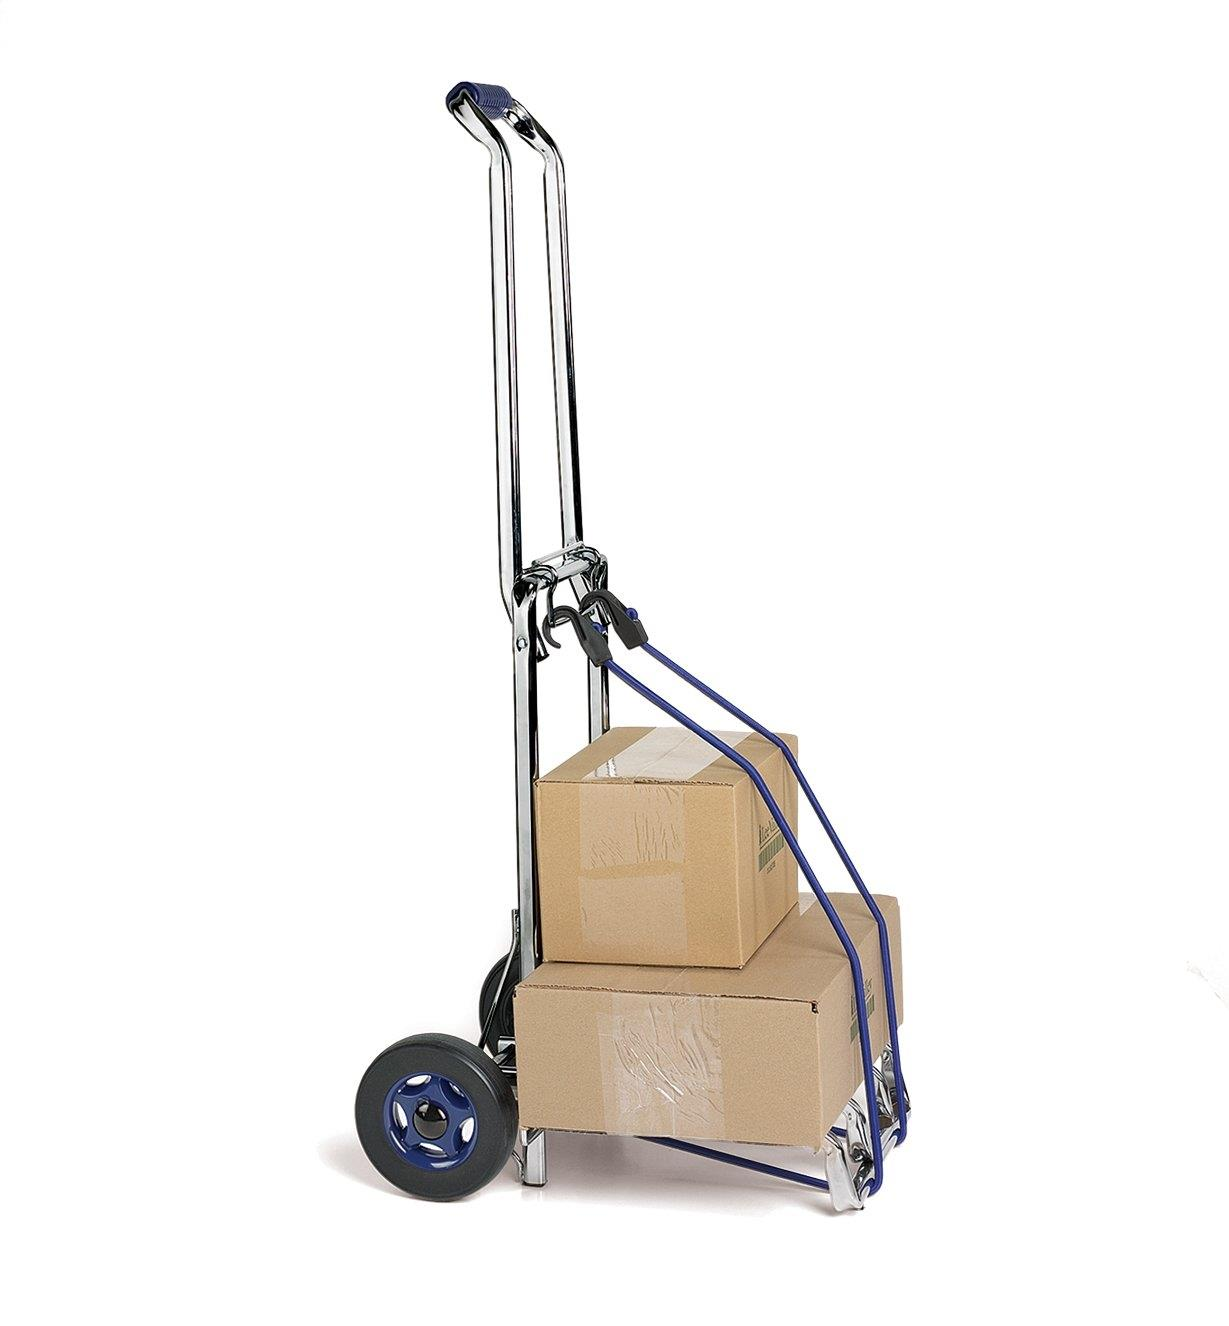 Ultimate Carryall cart loaded with cardboard boxes that are secured with a bungee cord